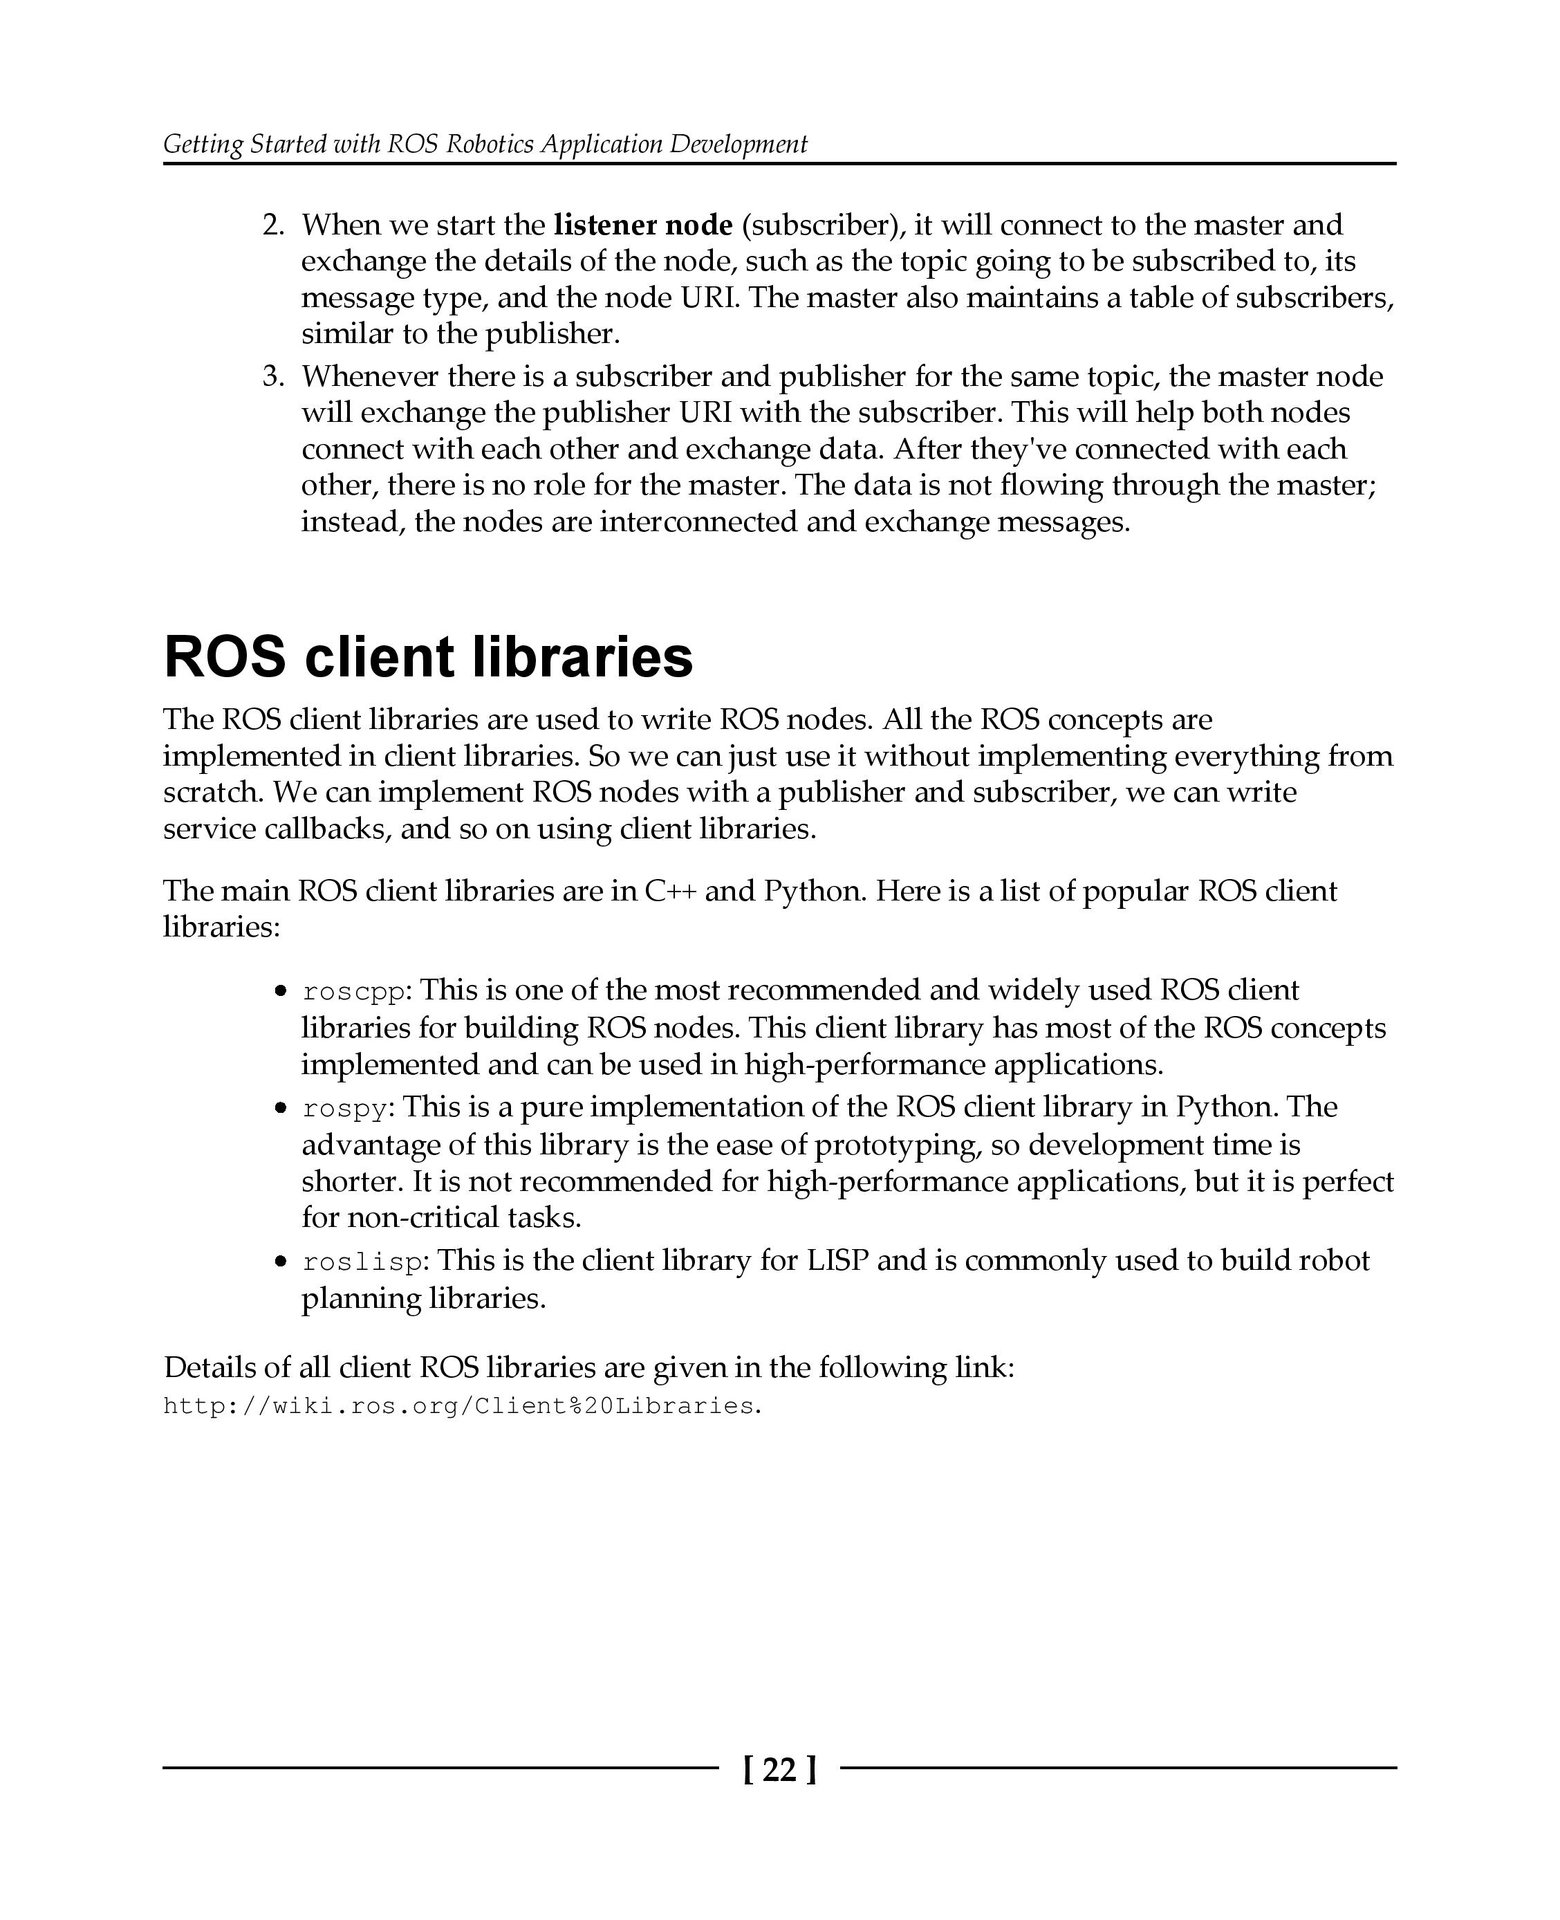 9781783554713 ros robotics projects %281%29 ilovepdf compressed %281%29 page 040